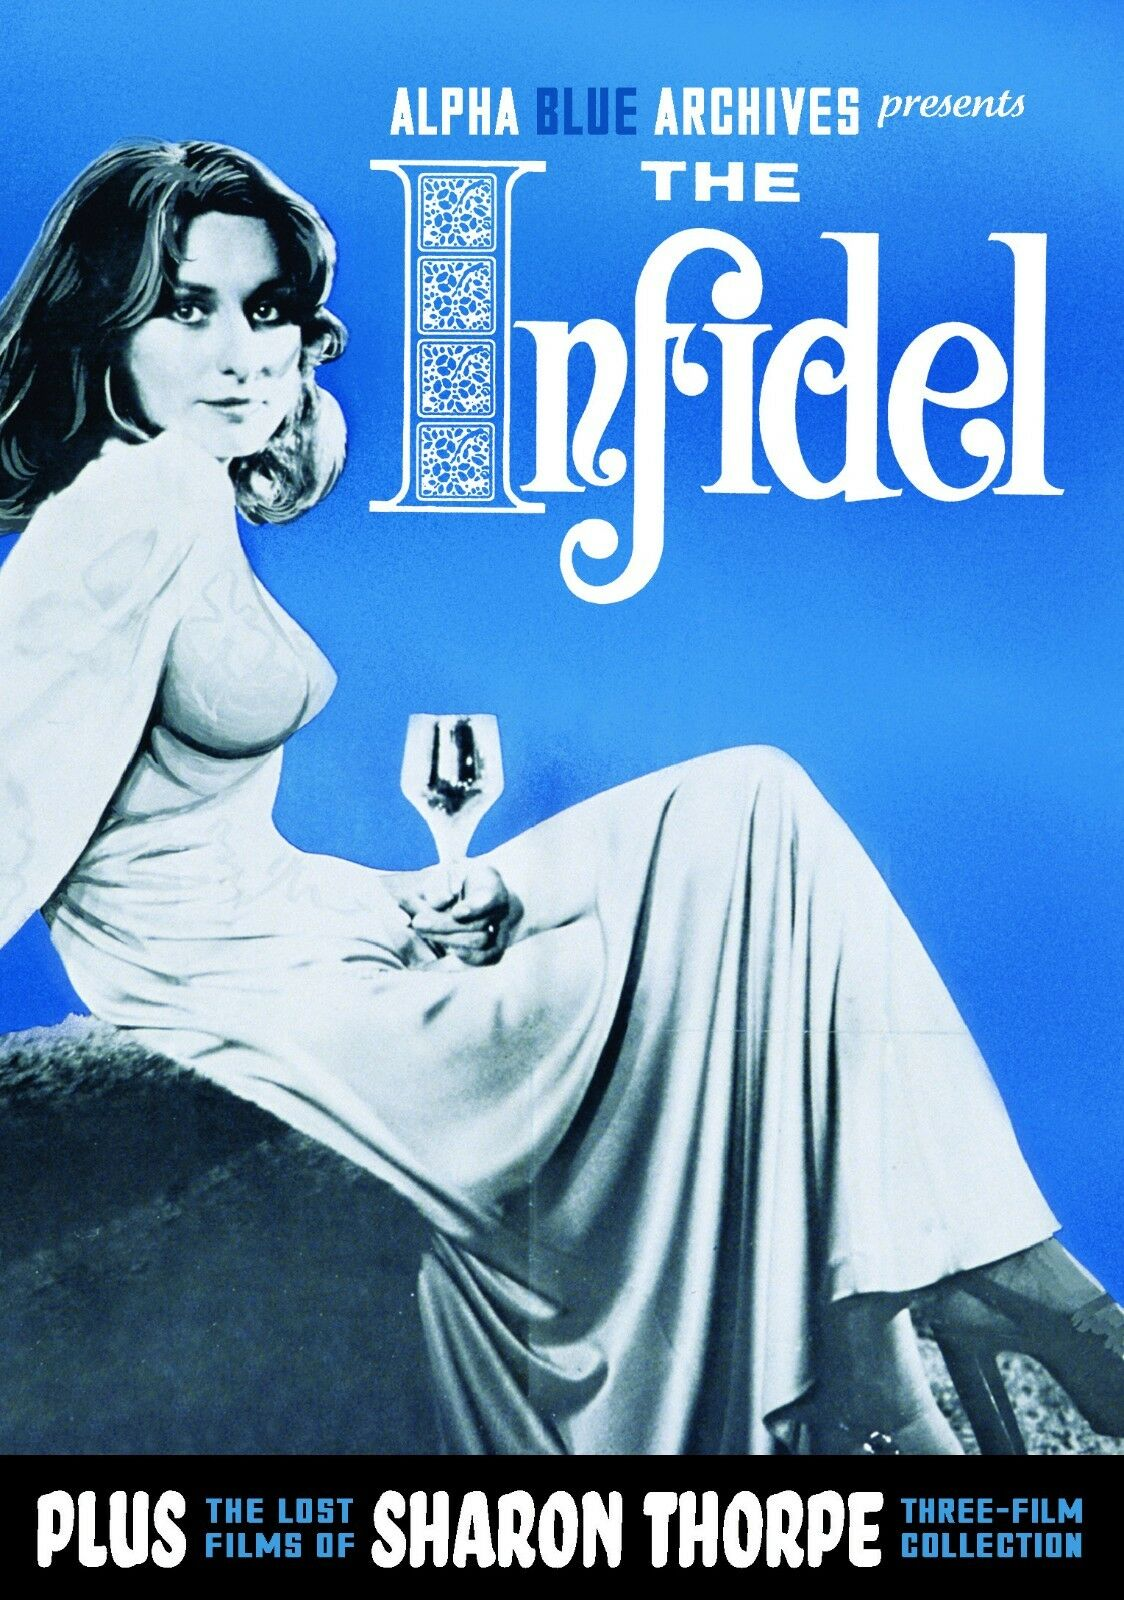 Alpha Blue Movie the infidel plus the lost films of sharon thorpe--three film collection